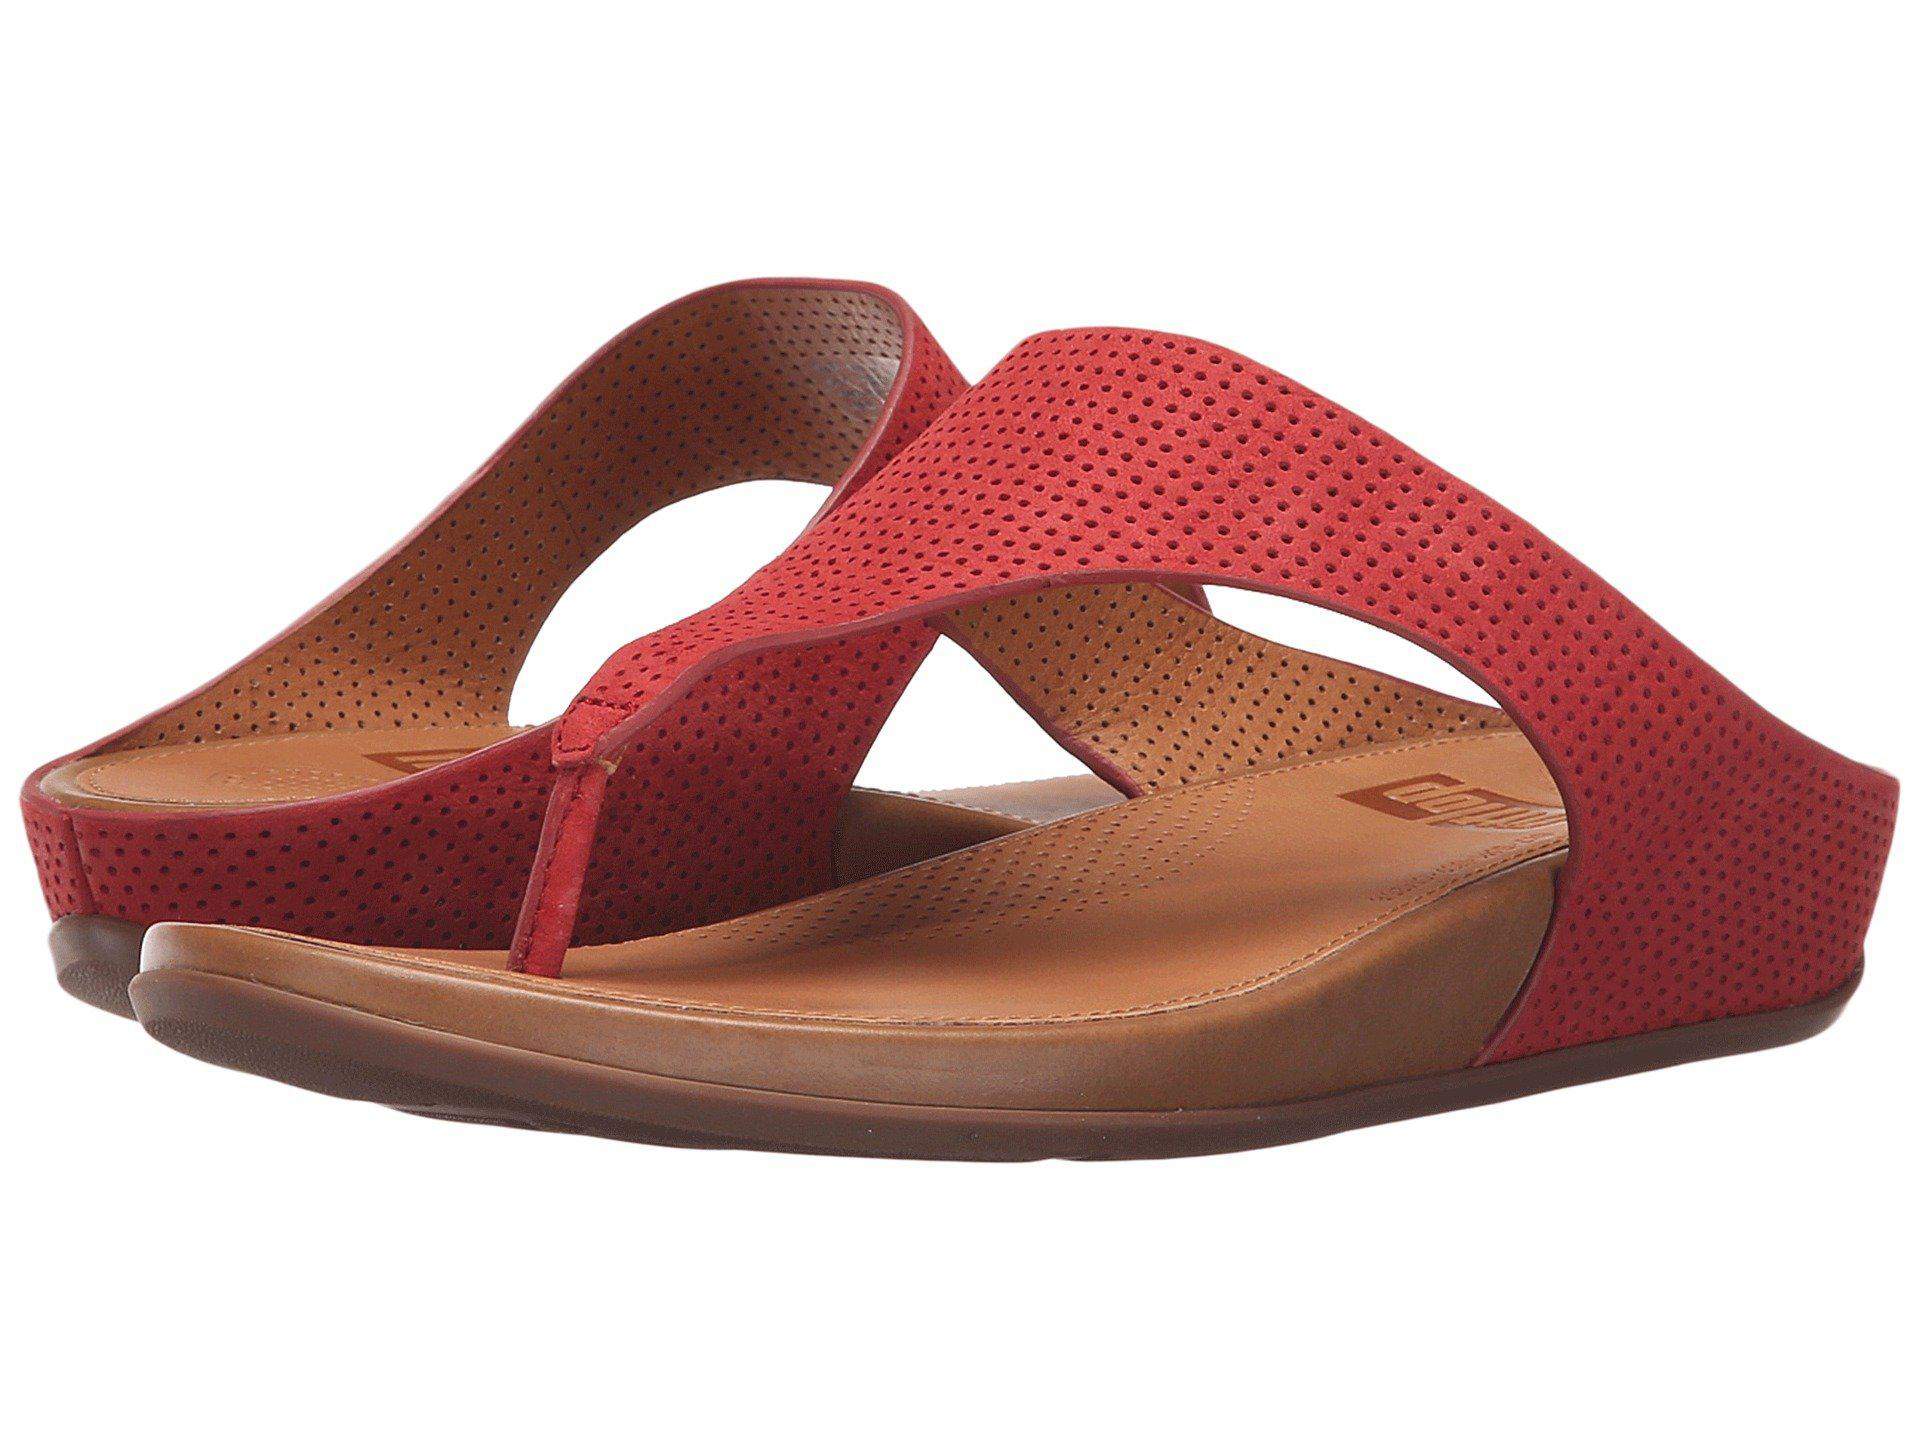 ee00eb51f29 Lyst - Fitflop Banda Perf in Red